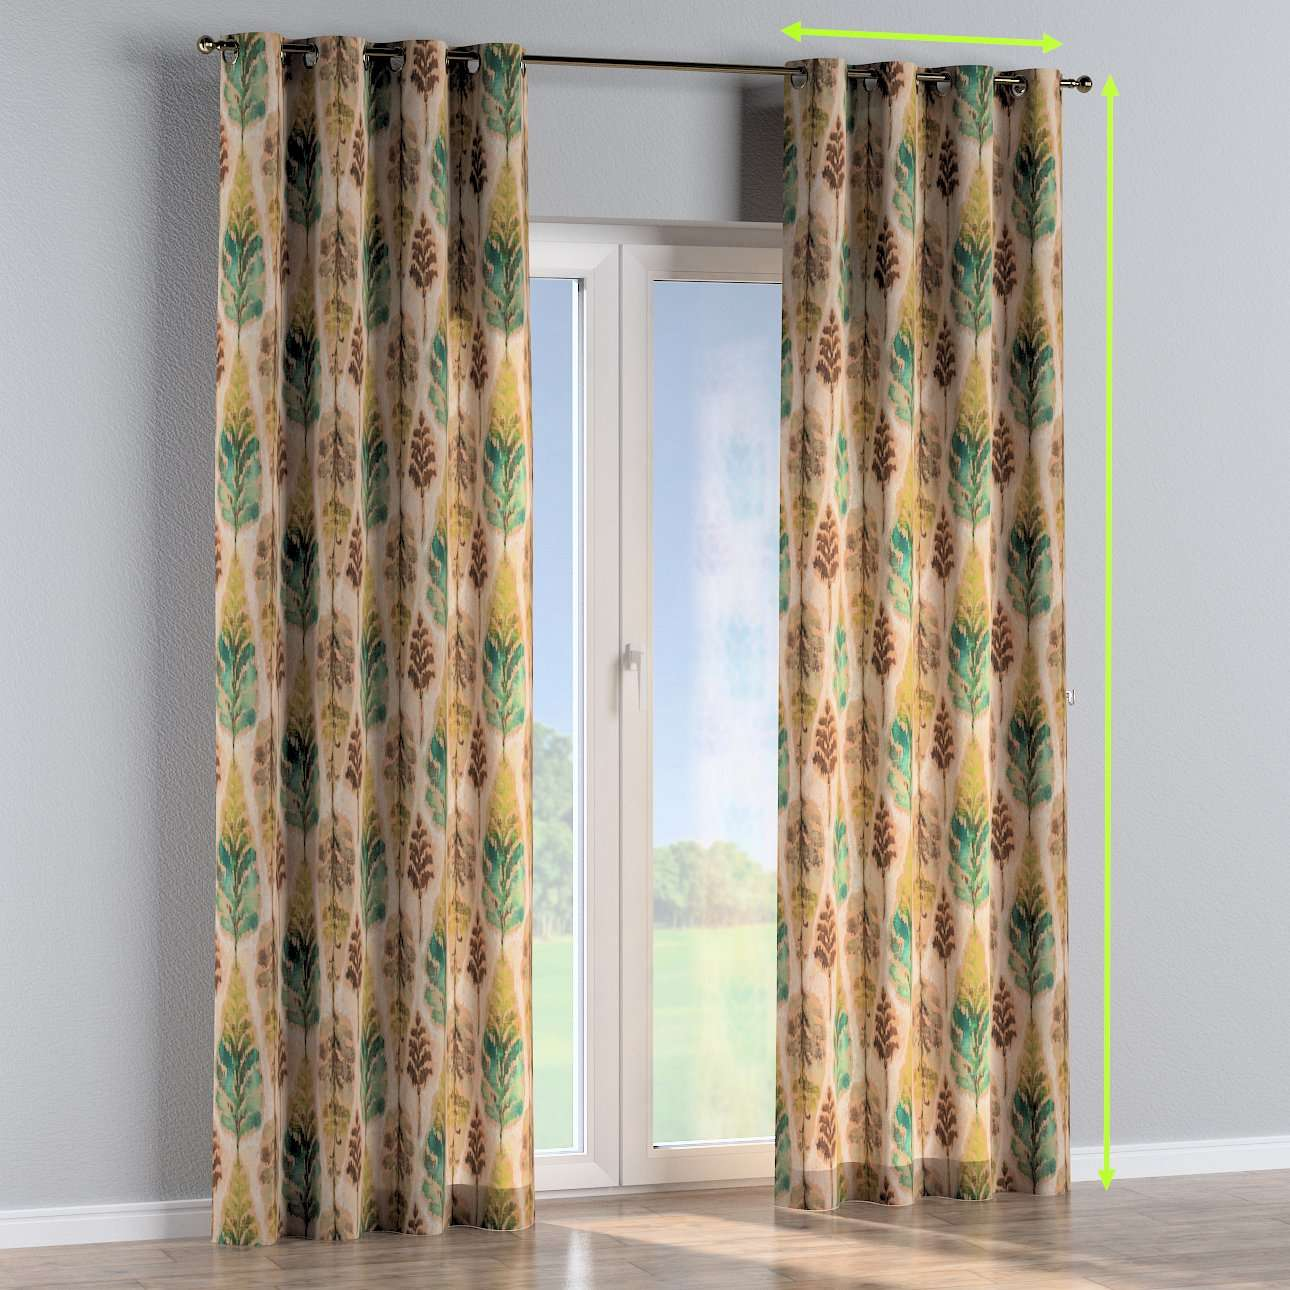 Eyelet curtains in collection Urban Jungle, fabric: 141-60